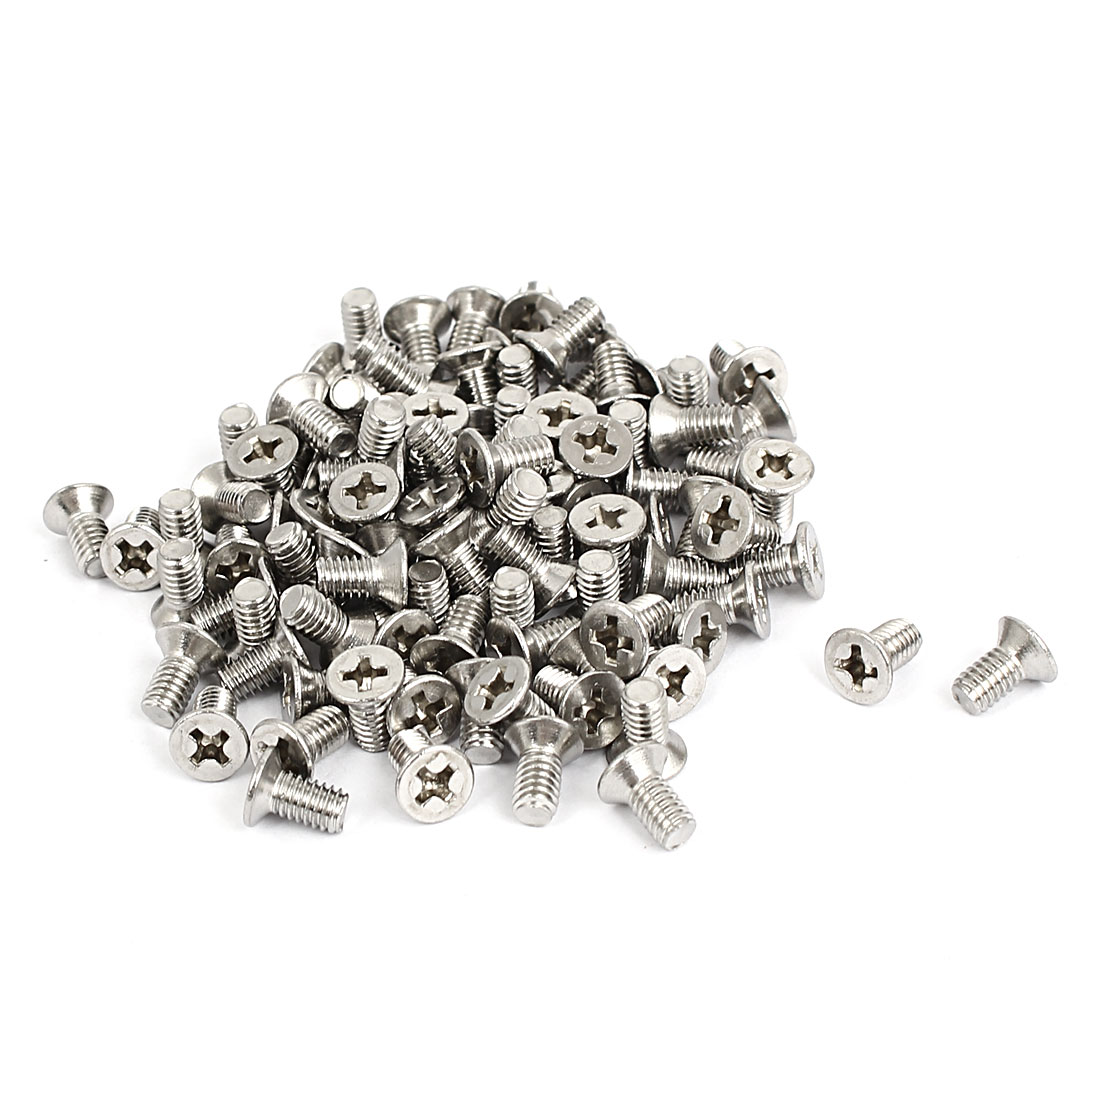 M4x8mm Stainless Steel Countersunk Flat Head Cross Phillips Screw Bolts 100pcs